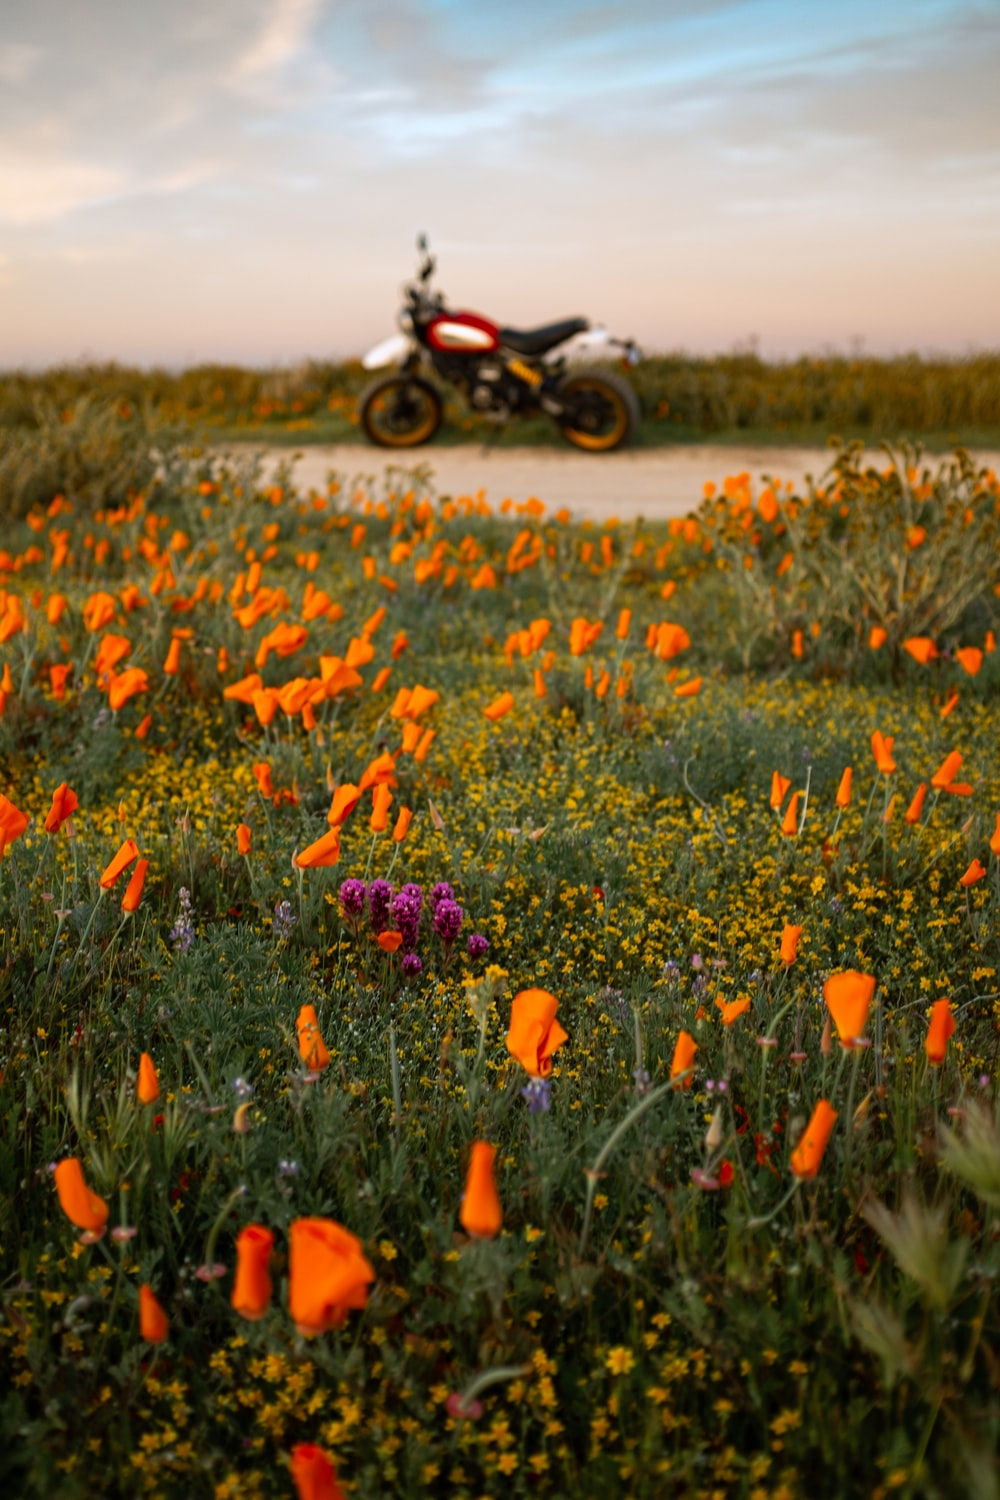 black motorcycle parked on flower field during daytime